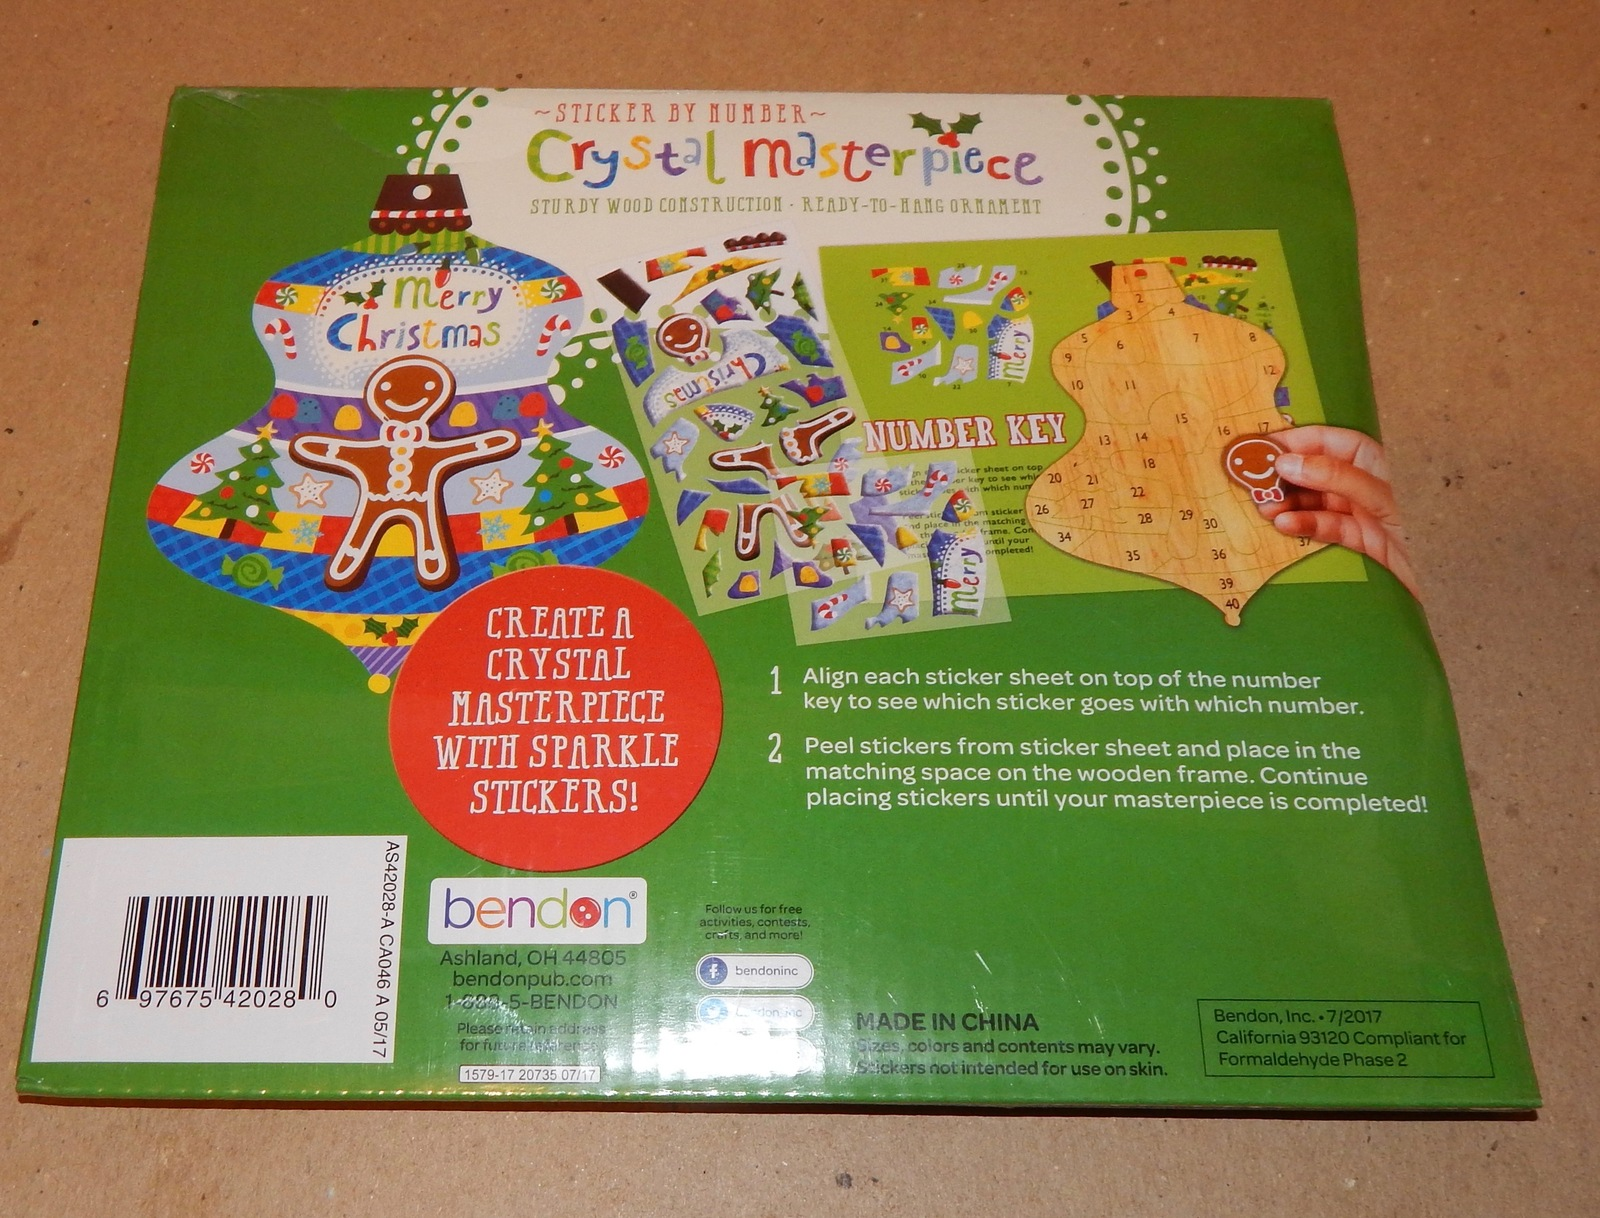 Christmas Ornament Sticker By Number Kit Crystal Masterpiece 40 stickers 151Z